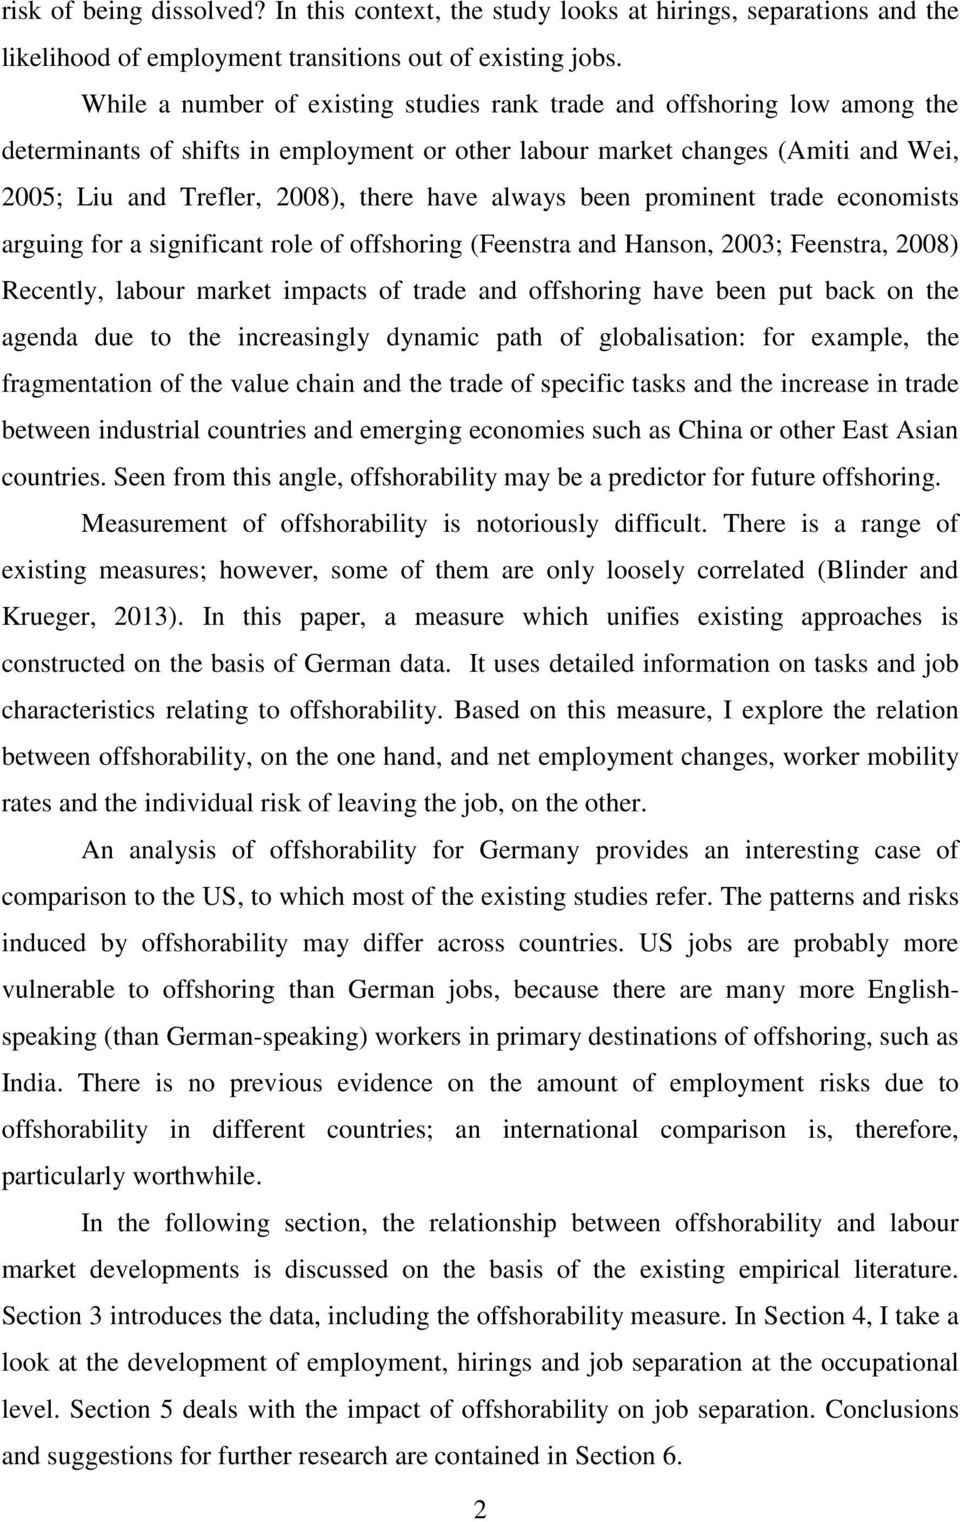 always been prominent trade economists arguing for a significant role of offshoring (Feenstra and Hanson, 2003; Feenstra, 2008) Recently, labour market impacts of trade and offshoring have been put